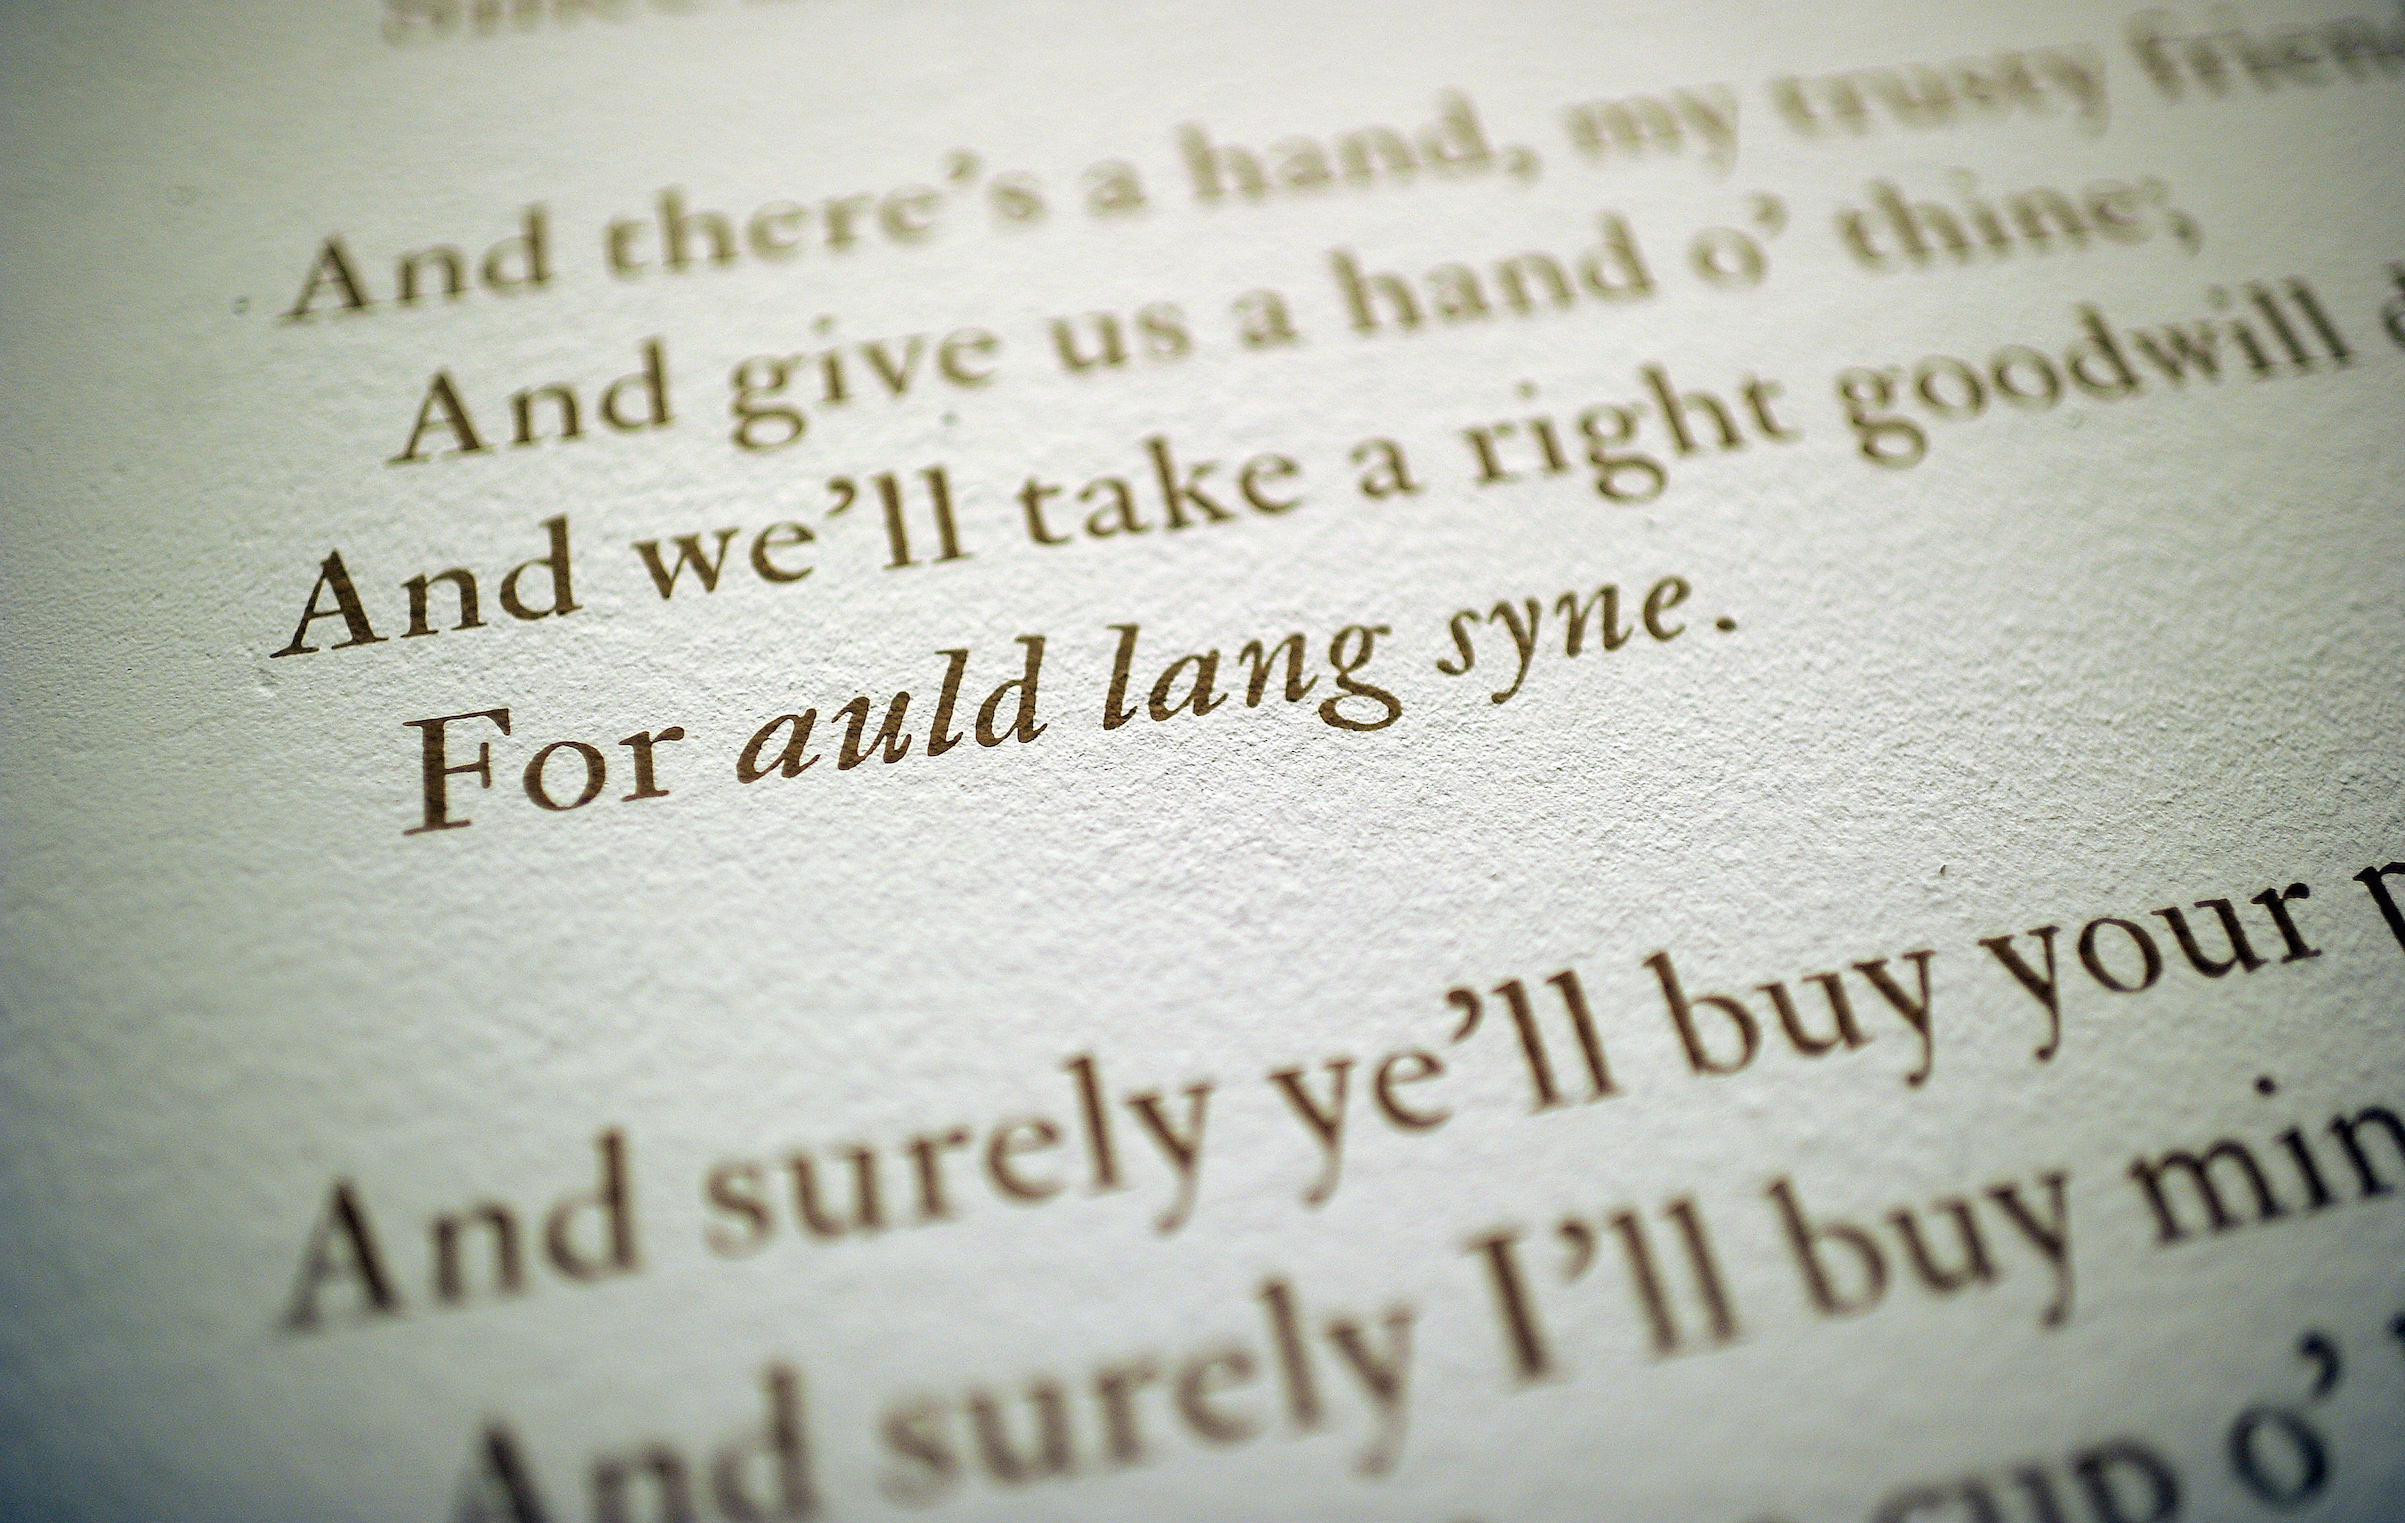 The Lyrics of  Auld Lang Syne  on display as part of an exhibition at the Morgan Library and Museum in New York, Dec. 9, 2011.